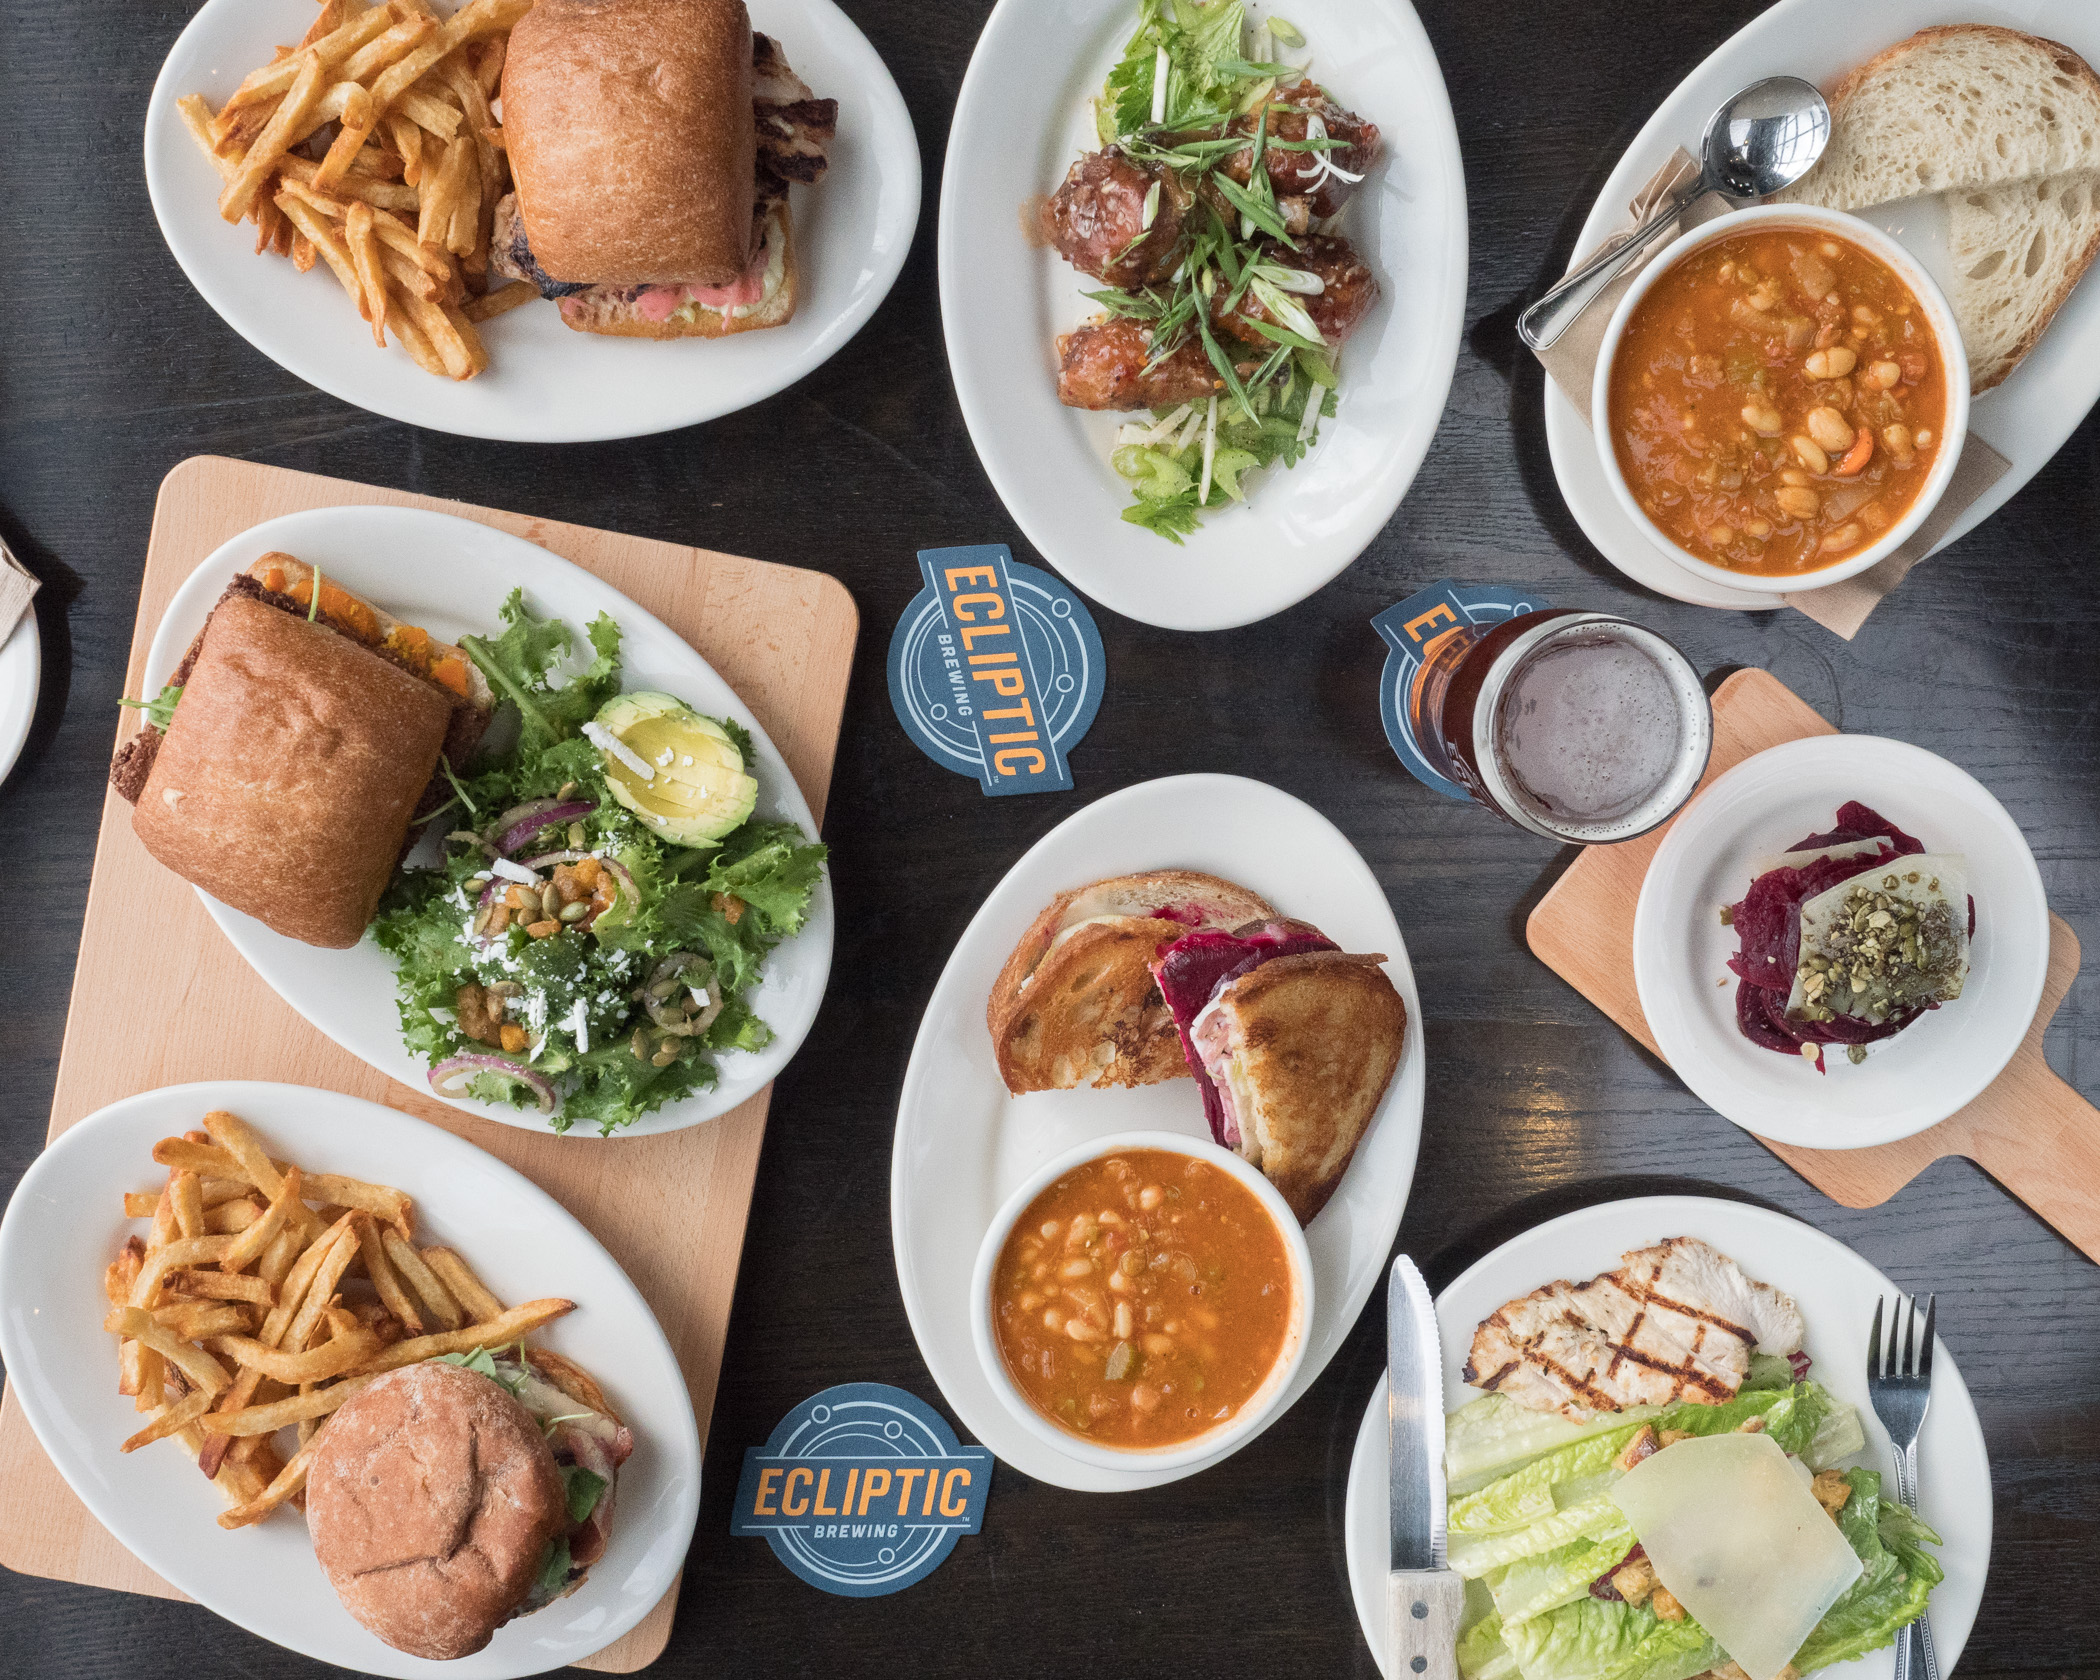 pub ecliptic brewing bar pdx picture portland pacific northwest food photography photographer-2.jpg